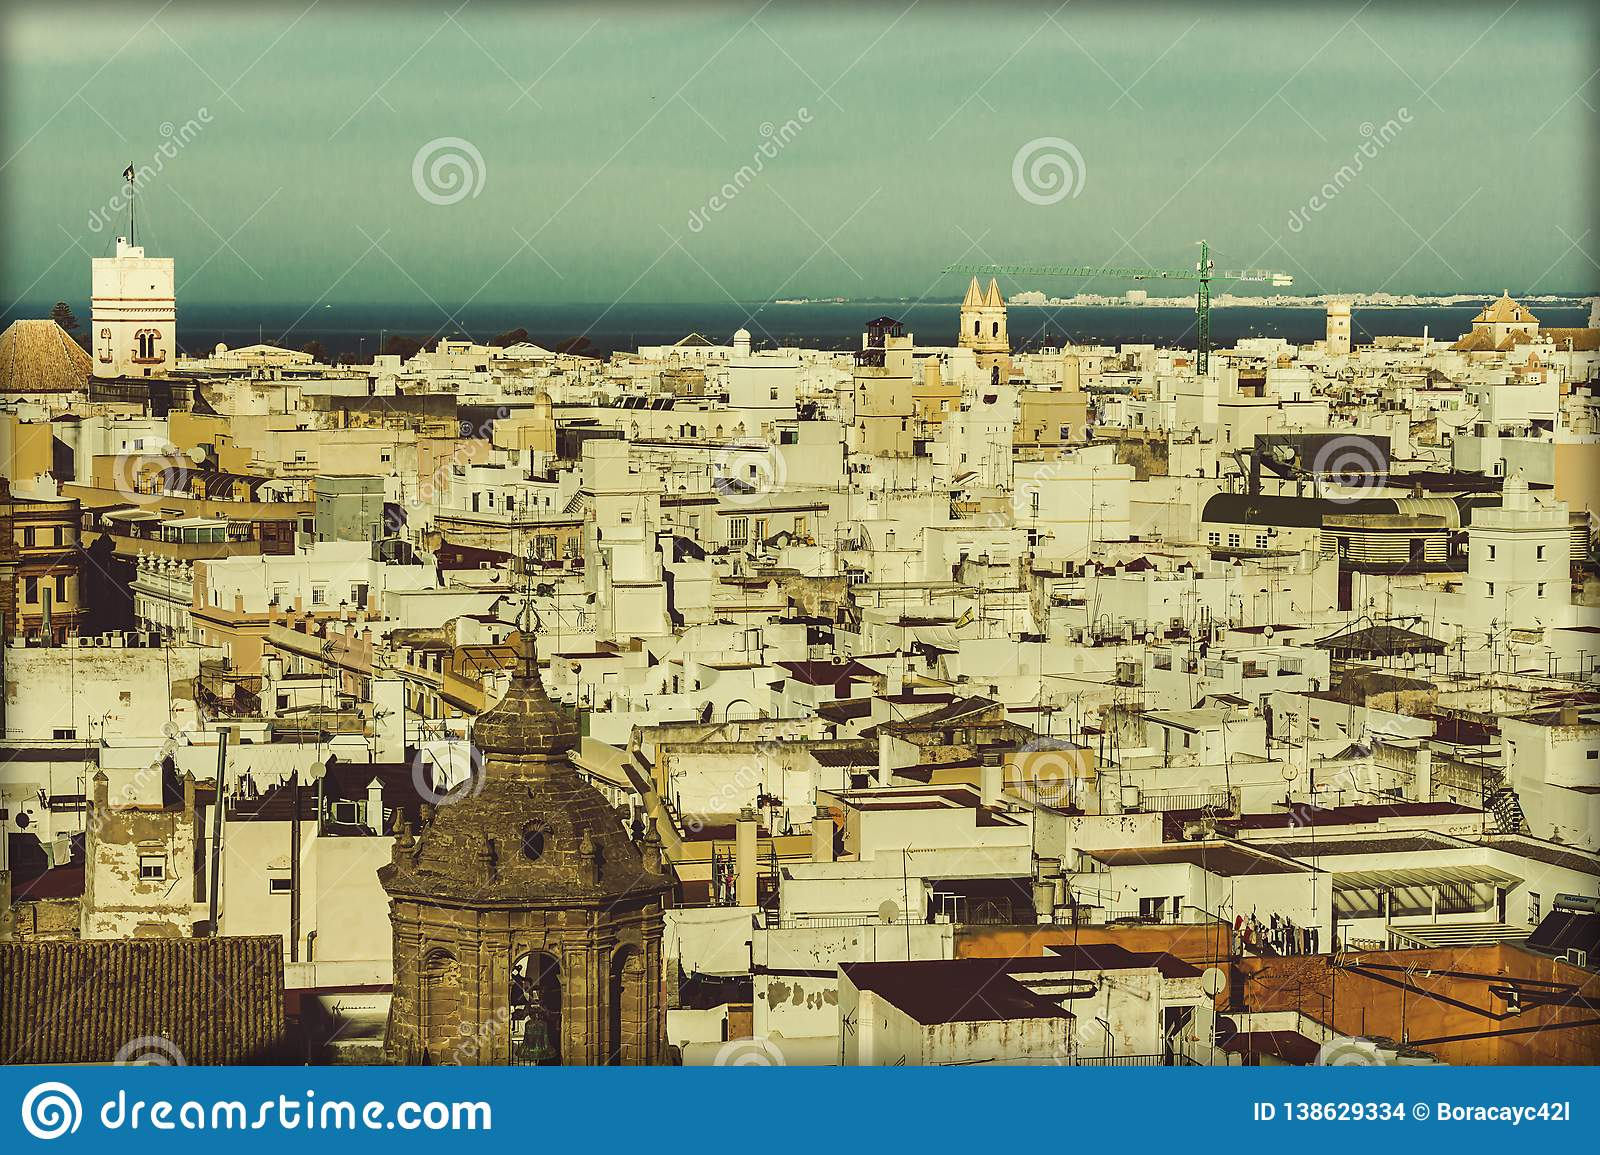 Aerial view of the city of Cadiz